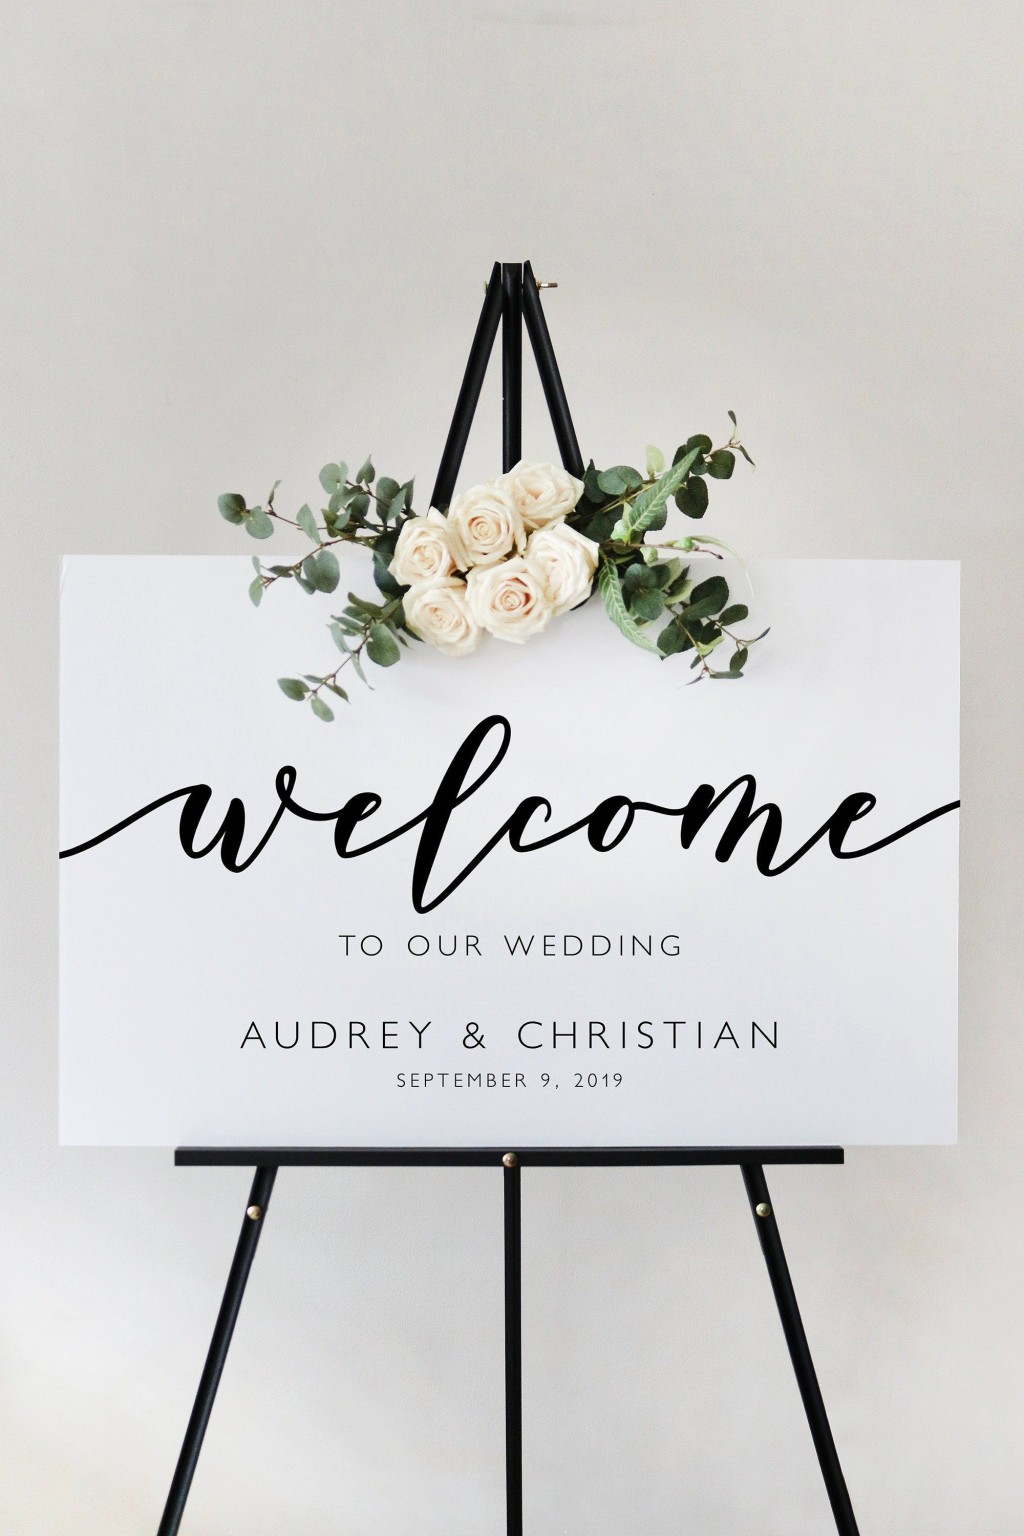 005 Formidable Wedding Welcome Sign Printable Template Concept  FreeLarge